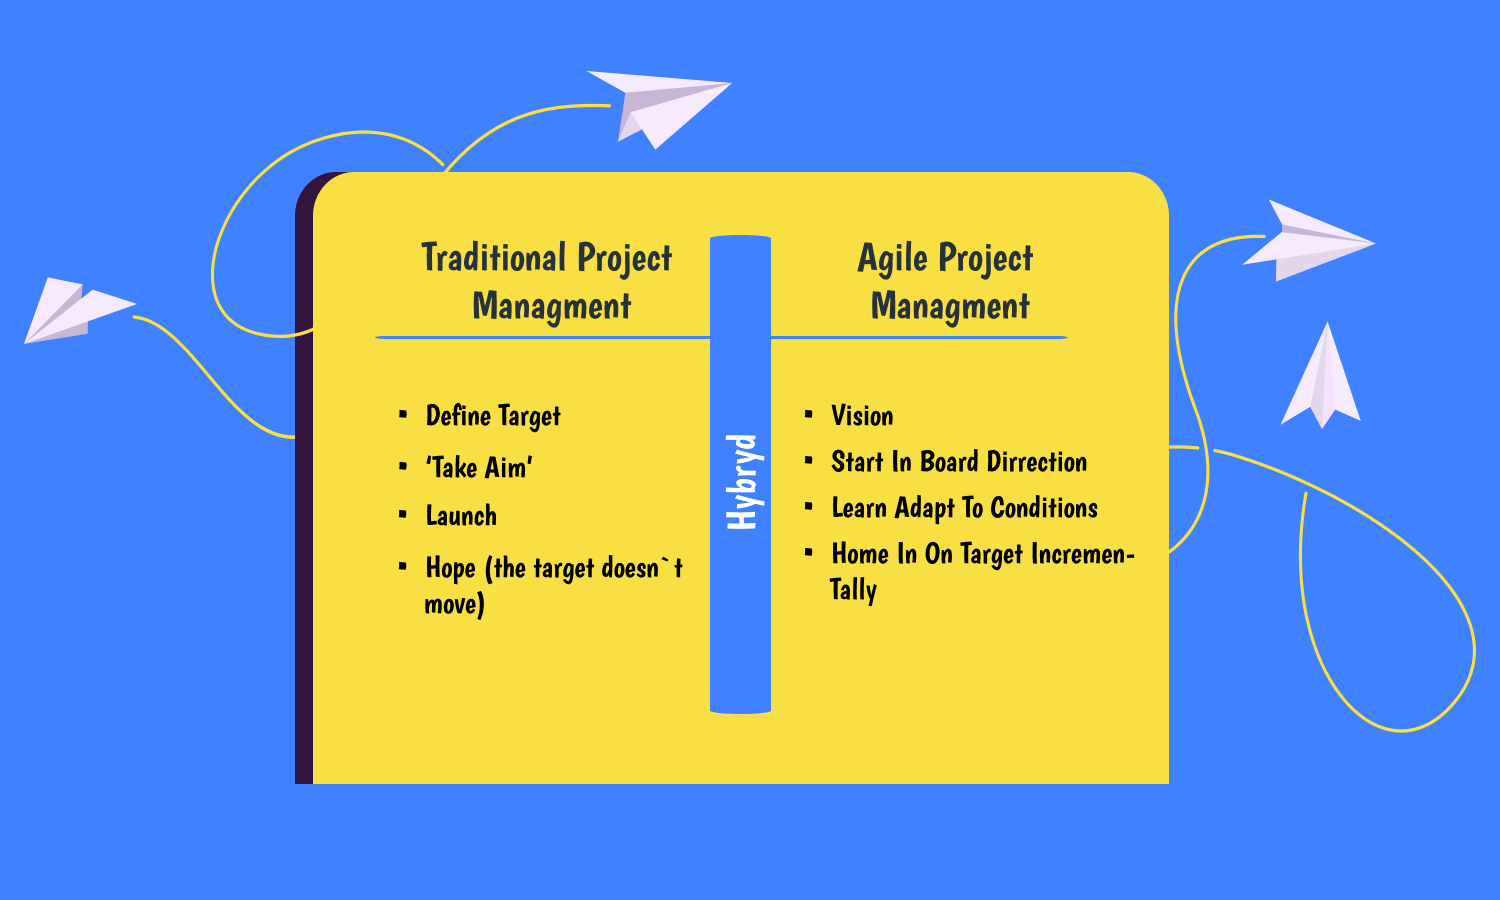 historical facts about the Agile project management